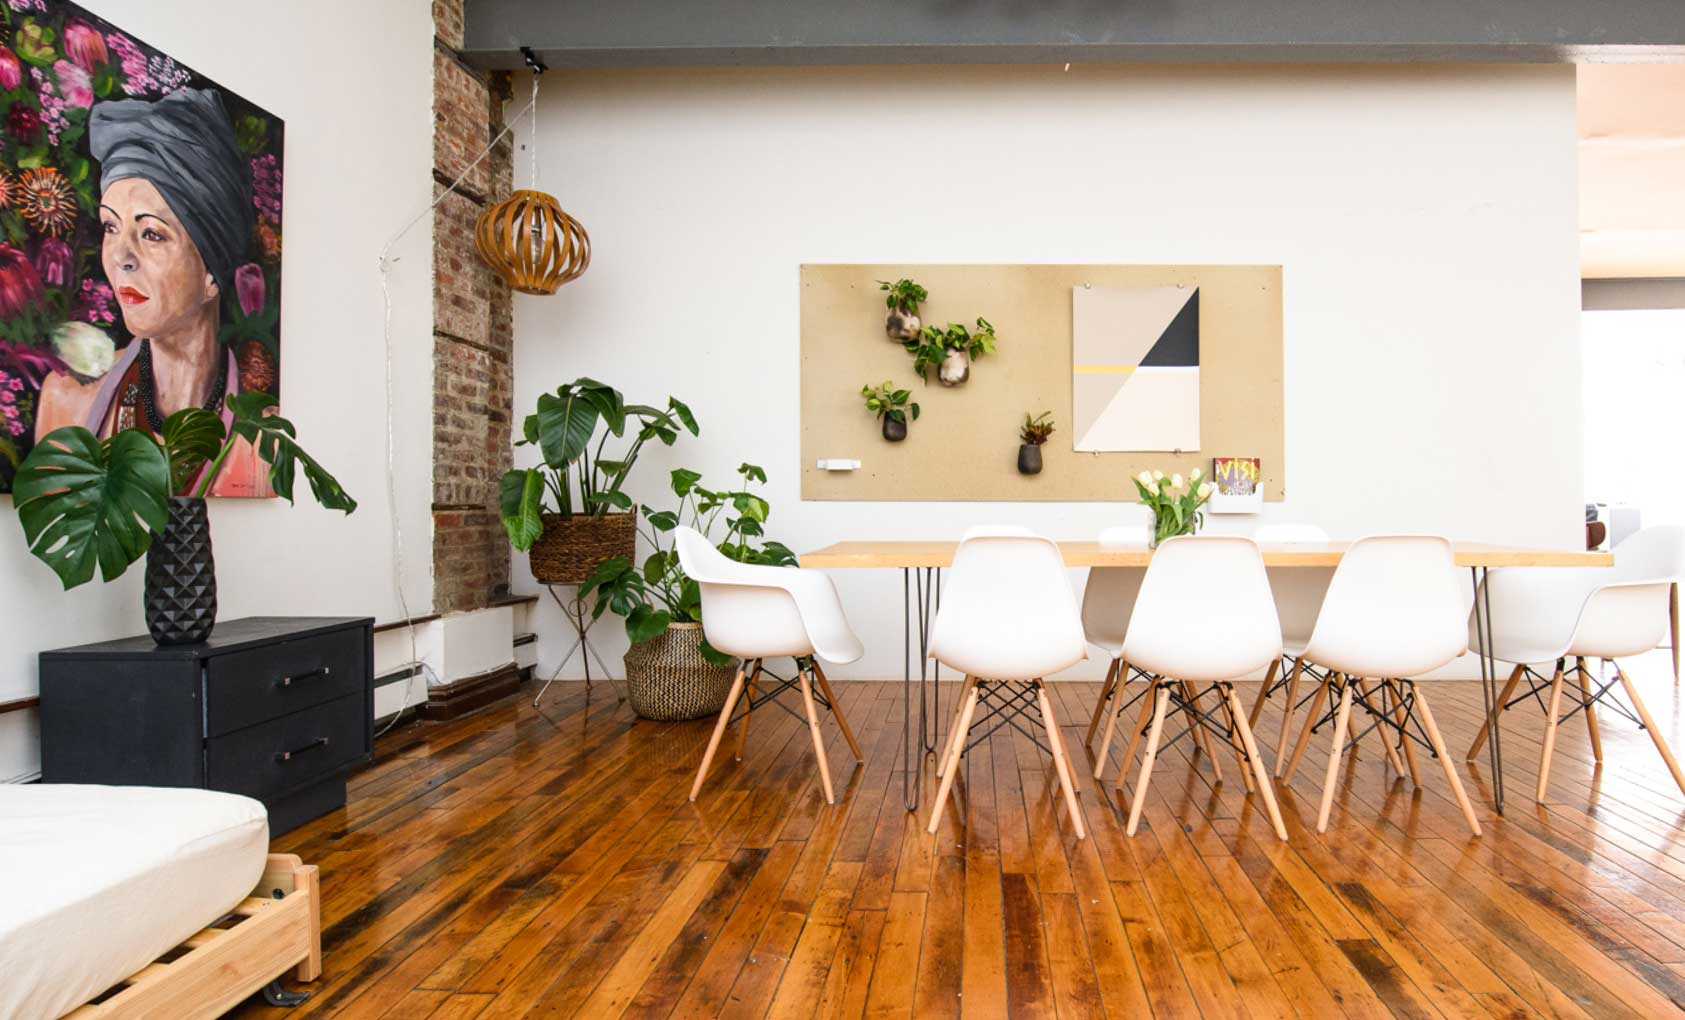 A Live/Work Space in Brooklyn with Community Spirit, Design*Sponge